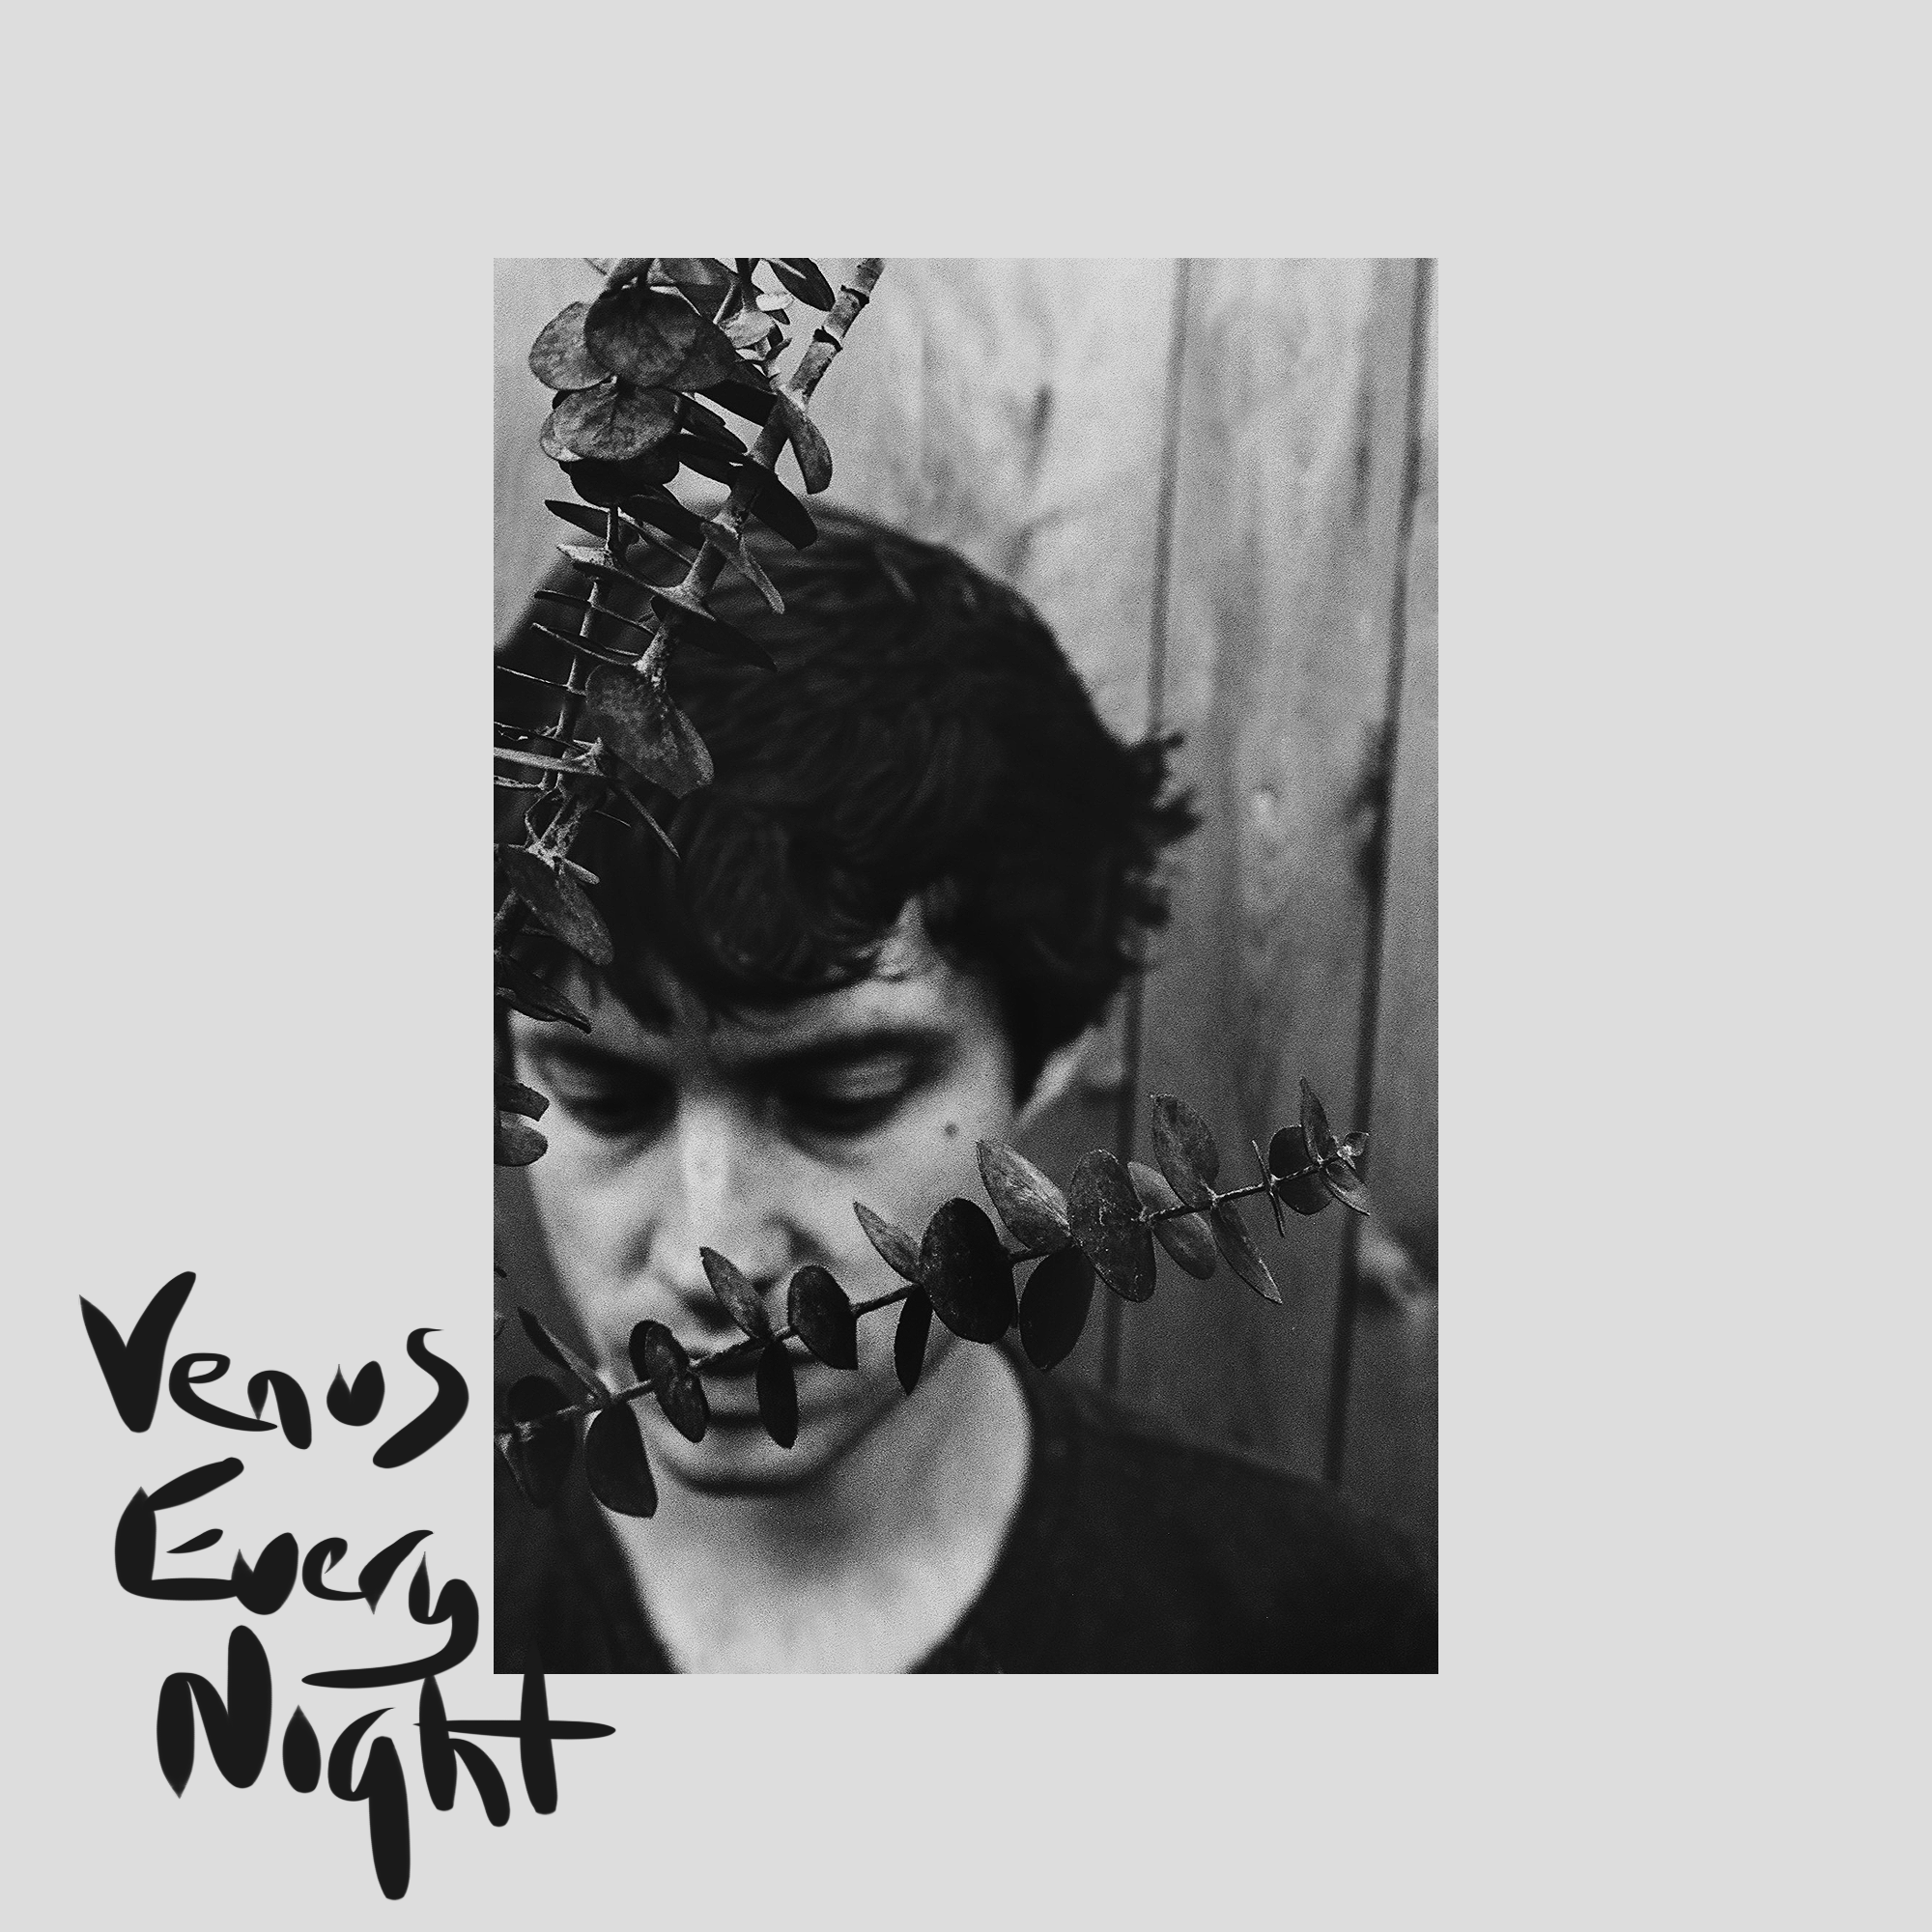 """PREMIERE: Tom Gallo reaches into the quiet cosmos on """"Venus Every Night"""""""